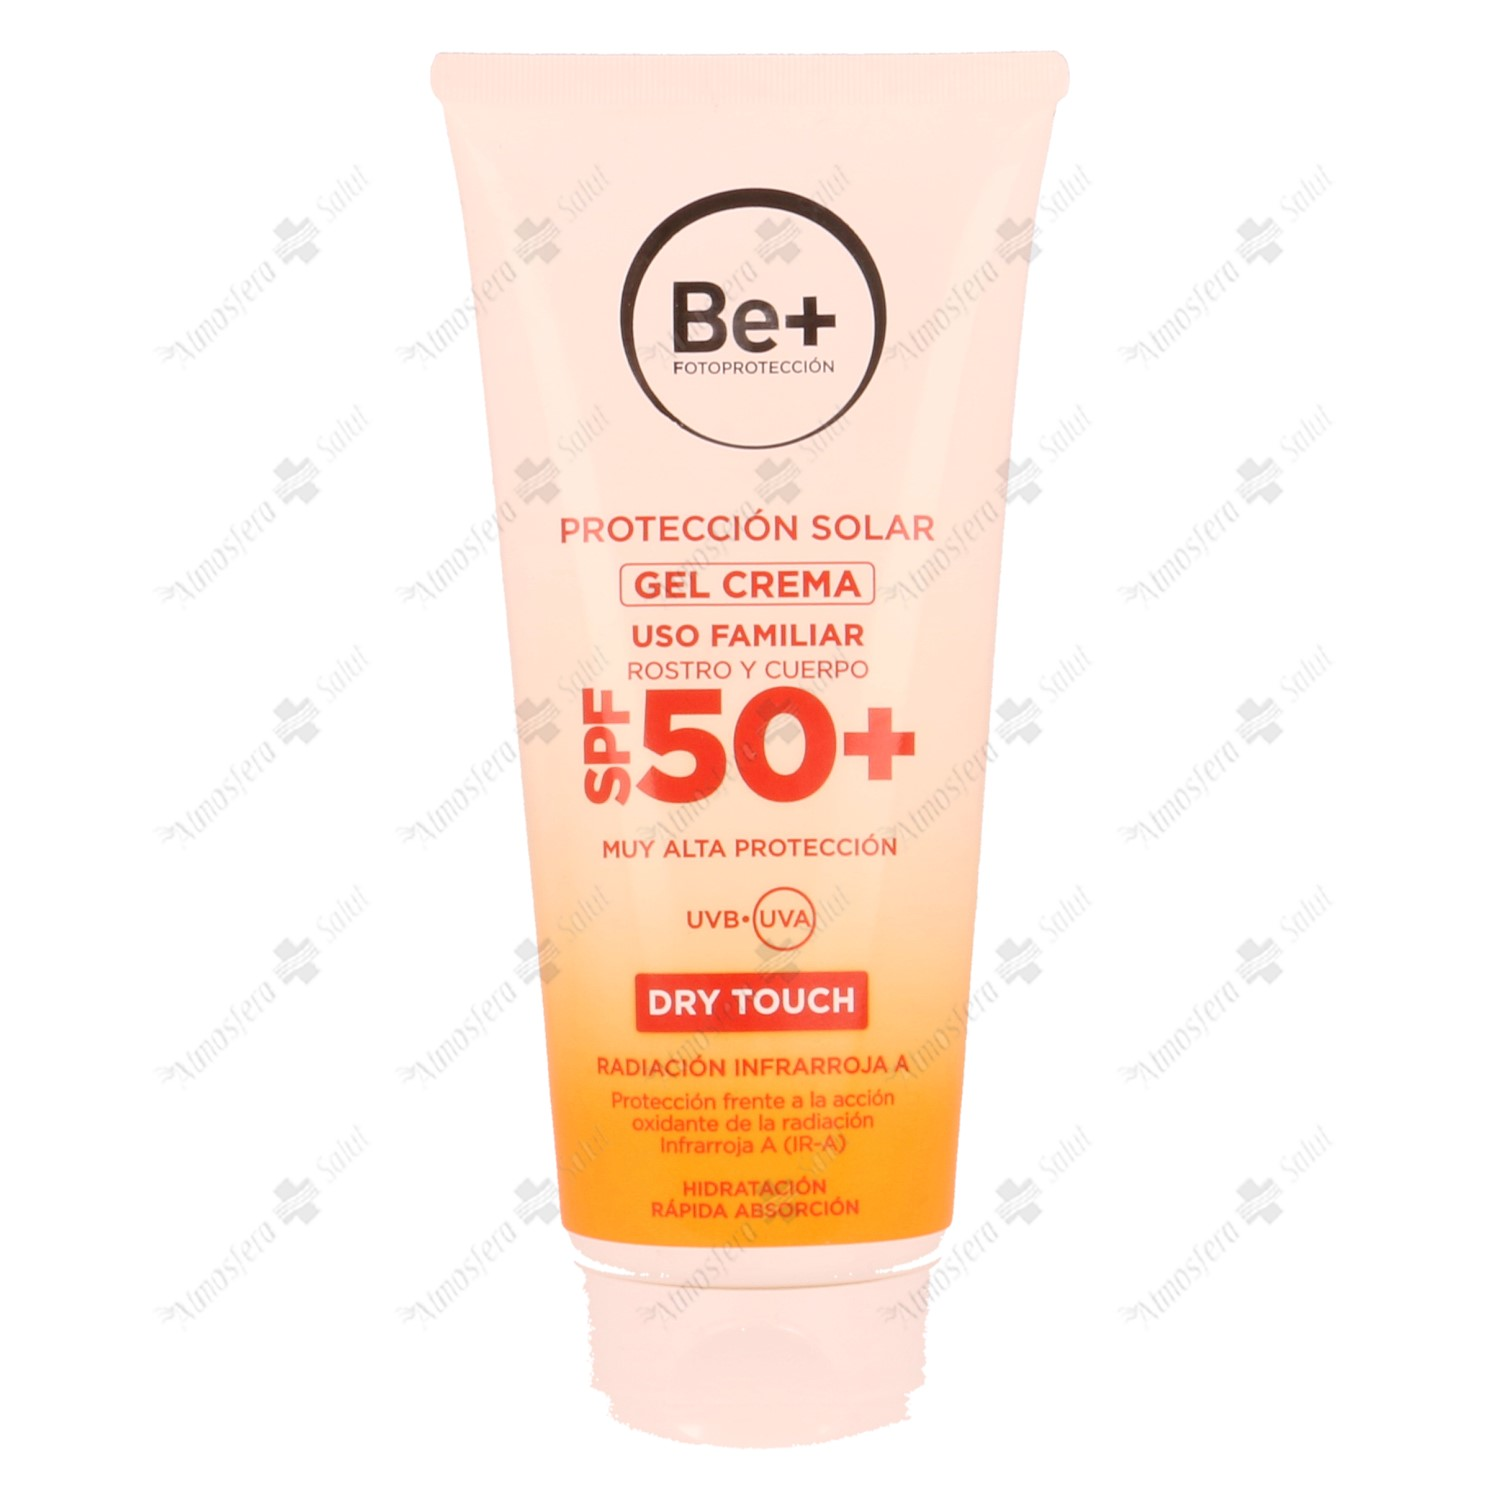 BE+ GEL CREMA CORPORAL SPF 50+- 176311 -  CINFA